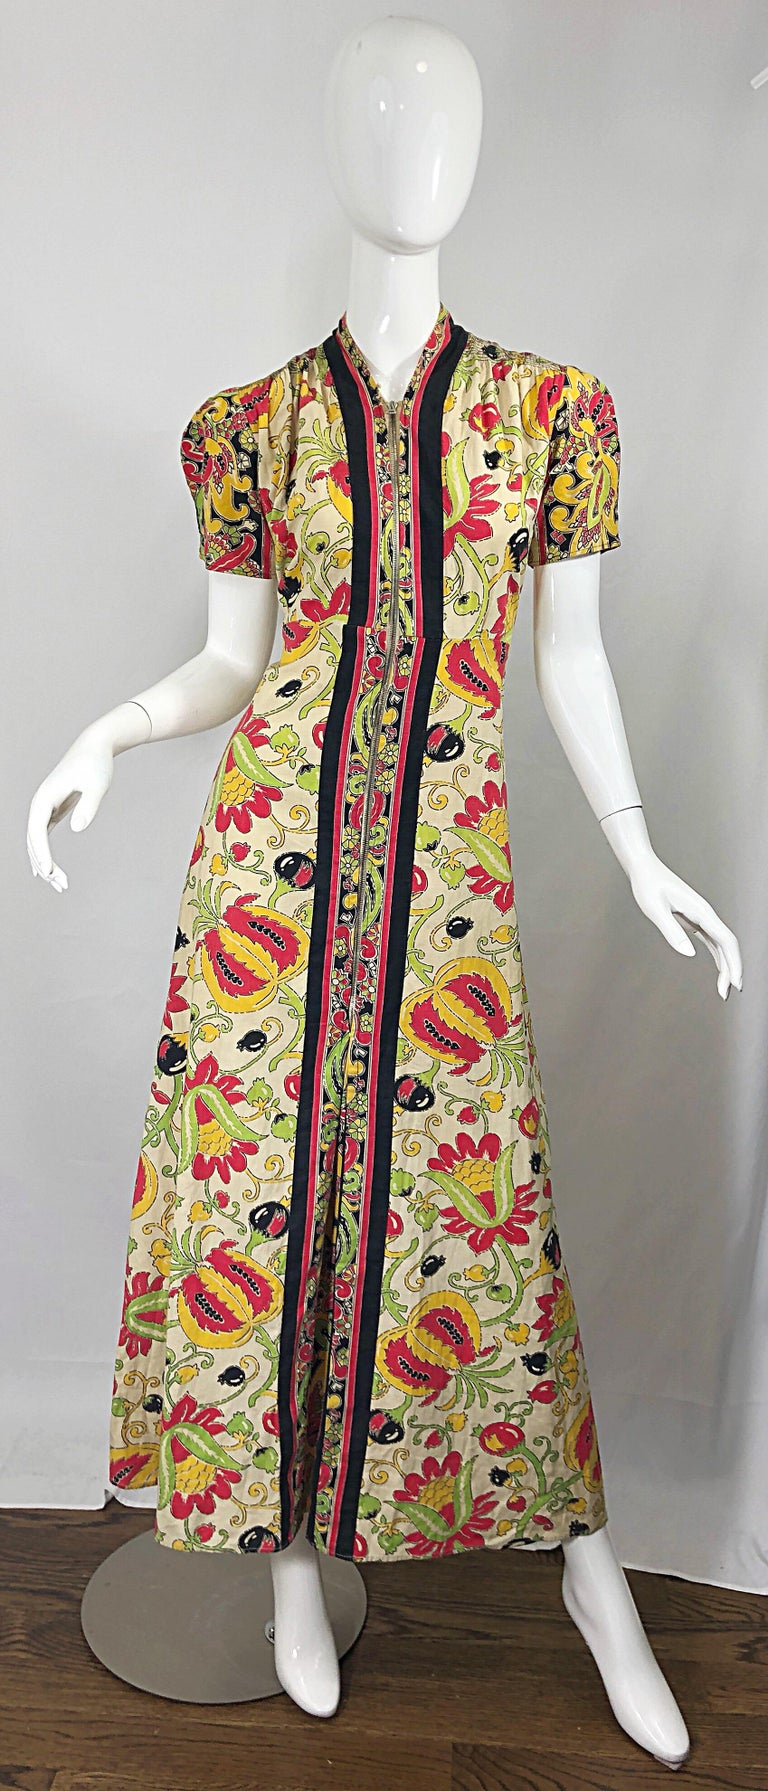 Amazing vintage 1940s Botanical Asian inspired linen and cotton maxi dress! Features vibrant colors of red, green, yellow, black and beige. Full metal zipper up the front to control cleavage. Chic slightly puckered puff sleeves. Very well made, with